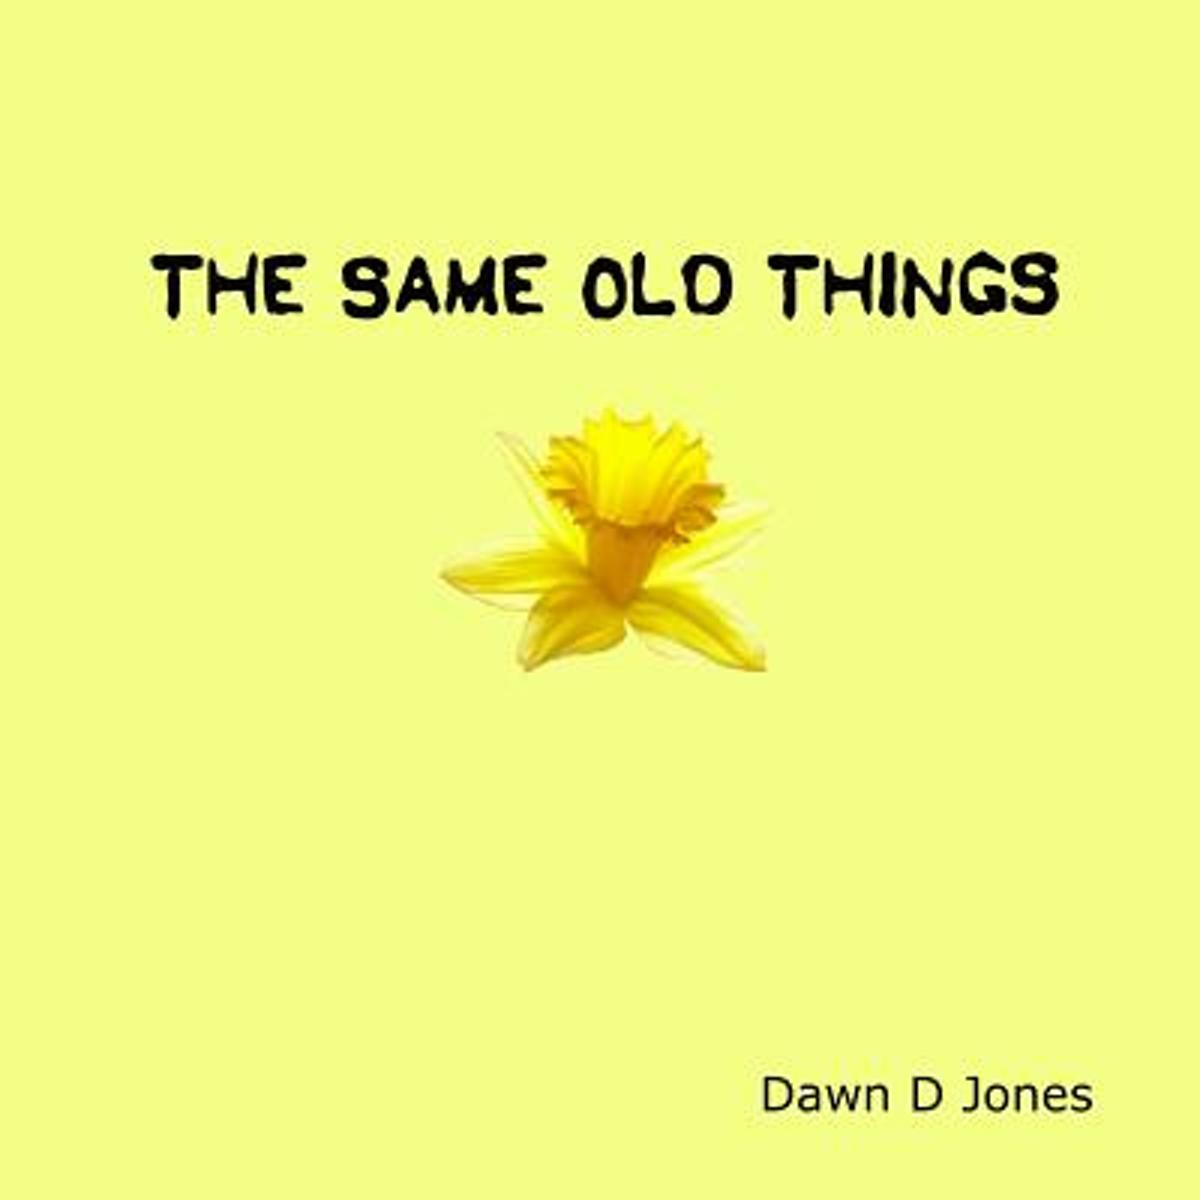 The Same Old Things